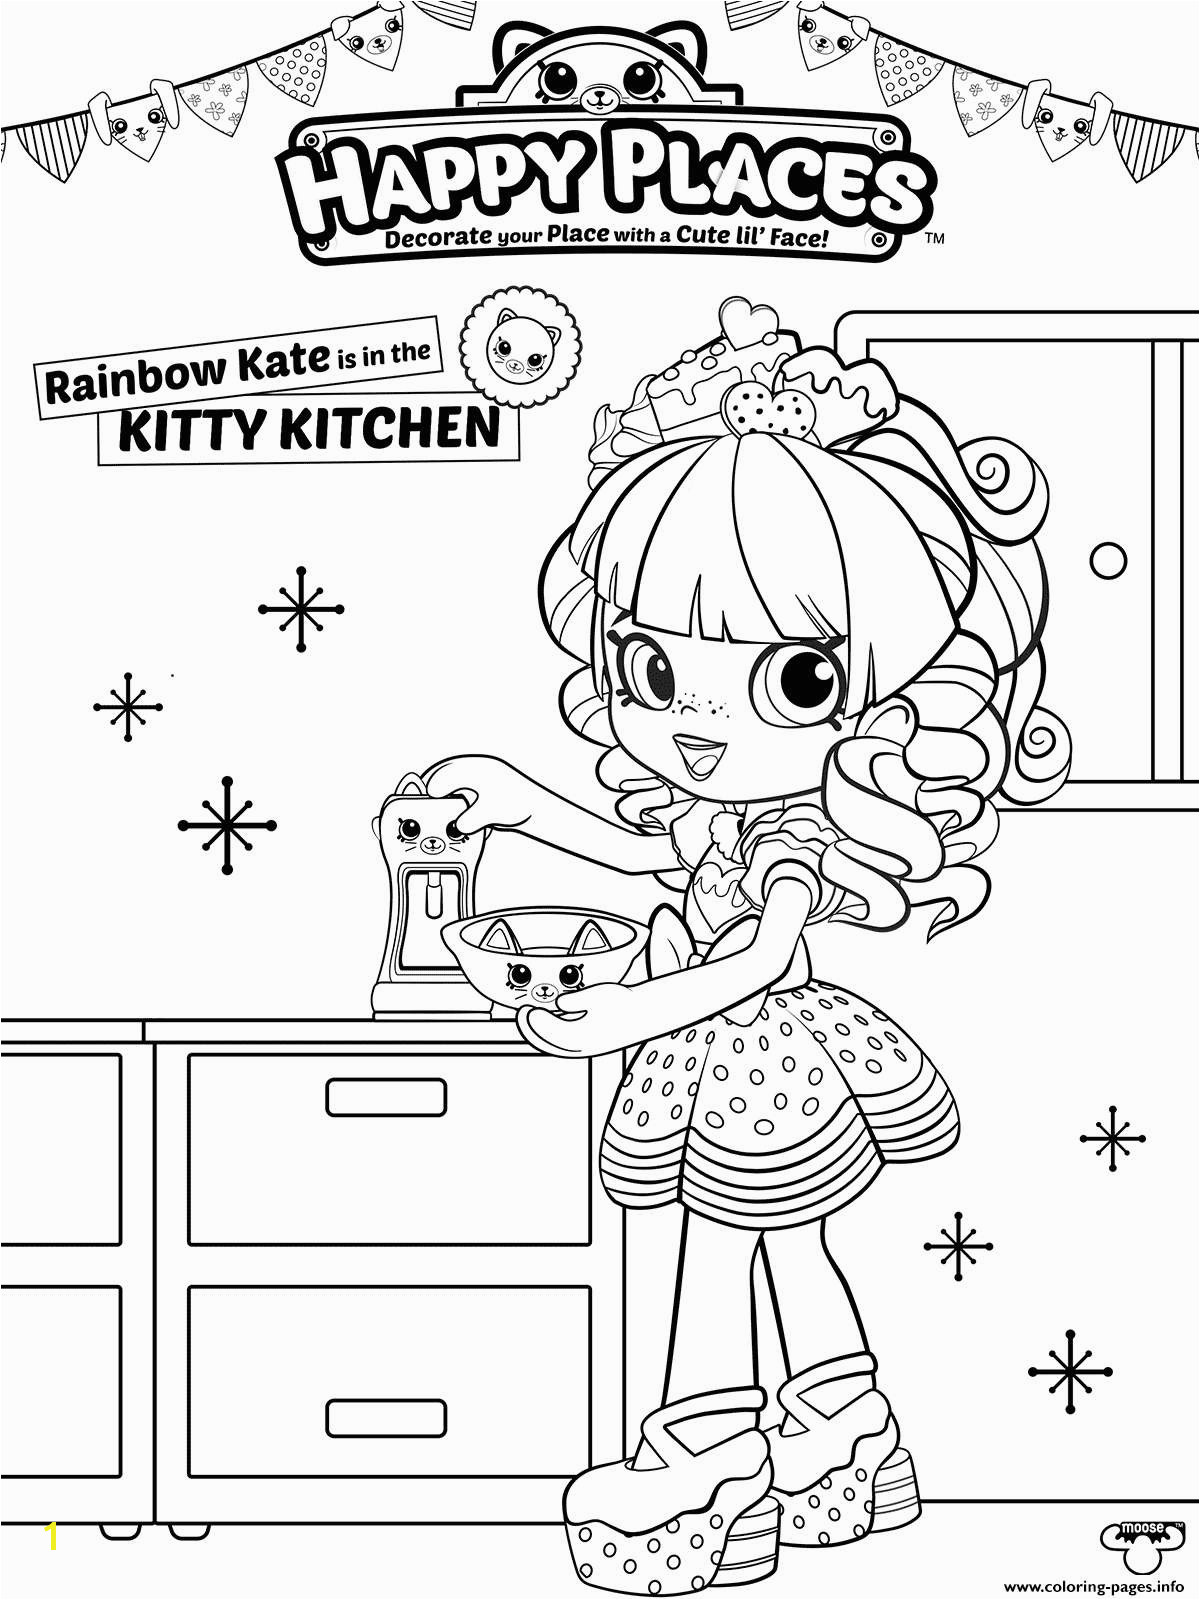 Delaware State Flag Coloring Page Delaware State Flag Coloring Page Coloring Pages Coloring Pages